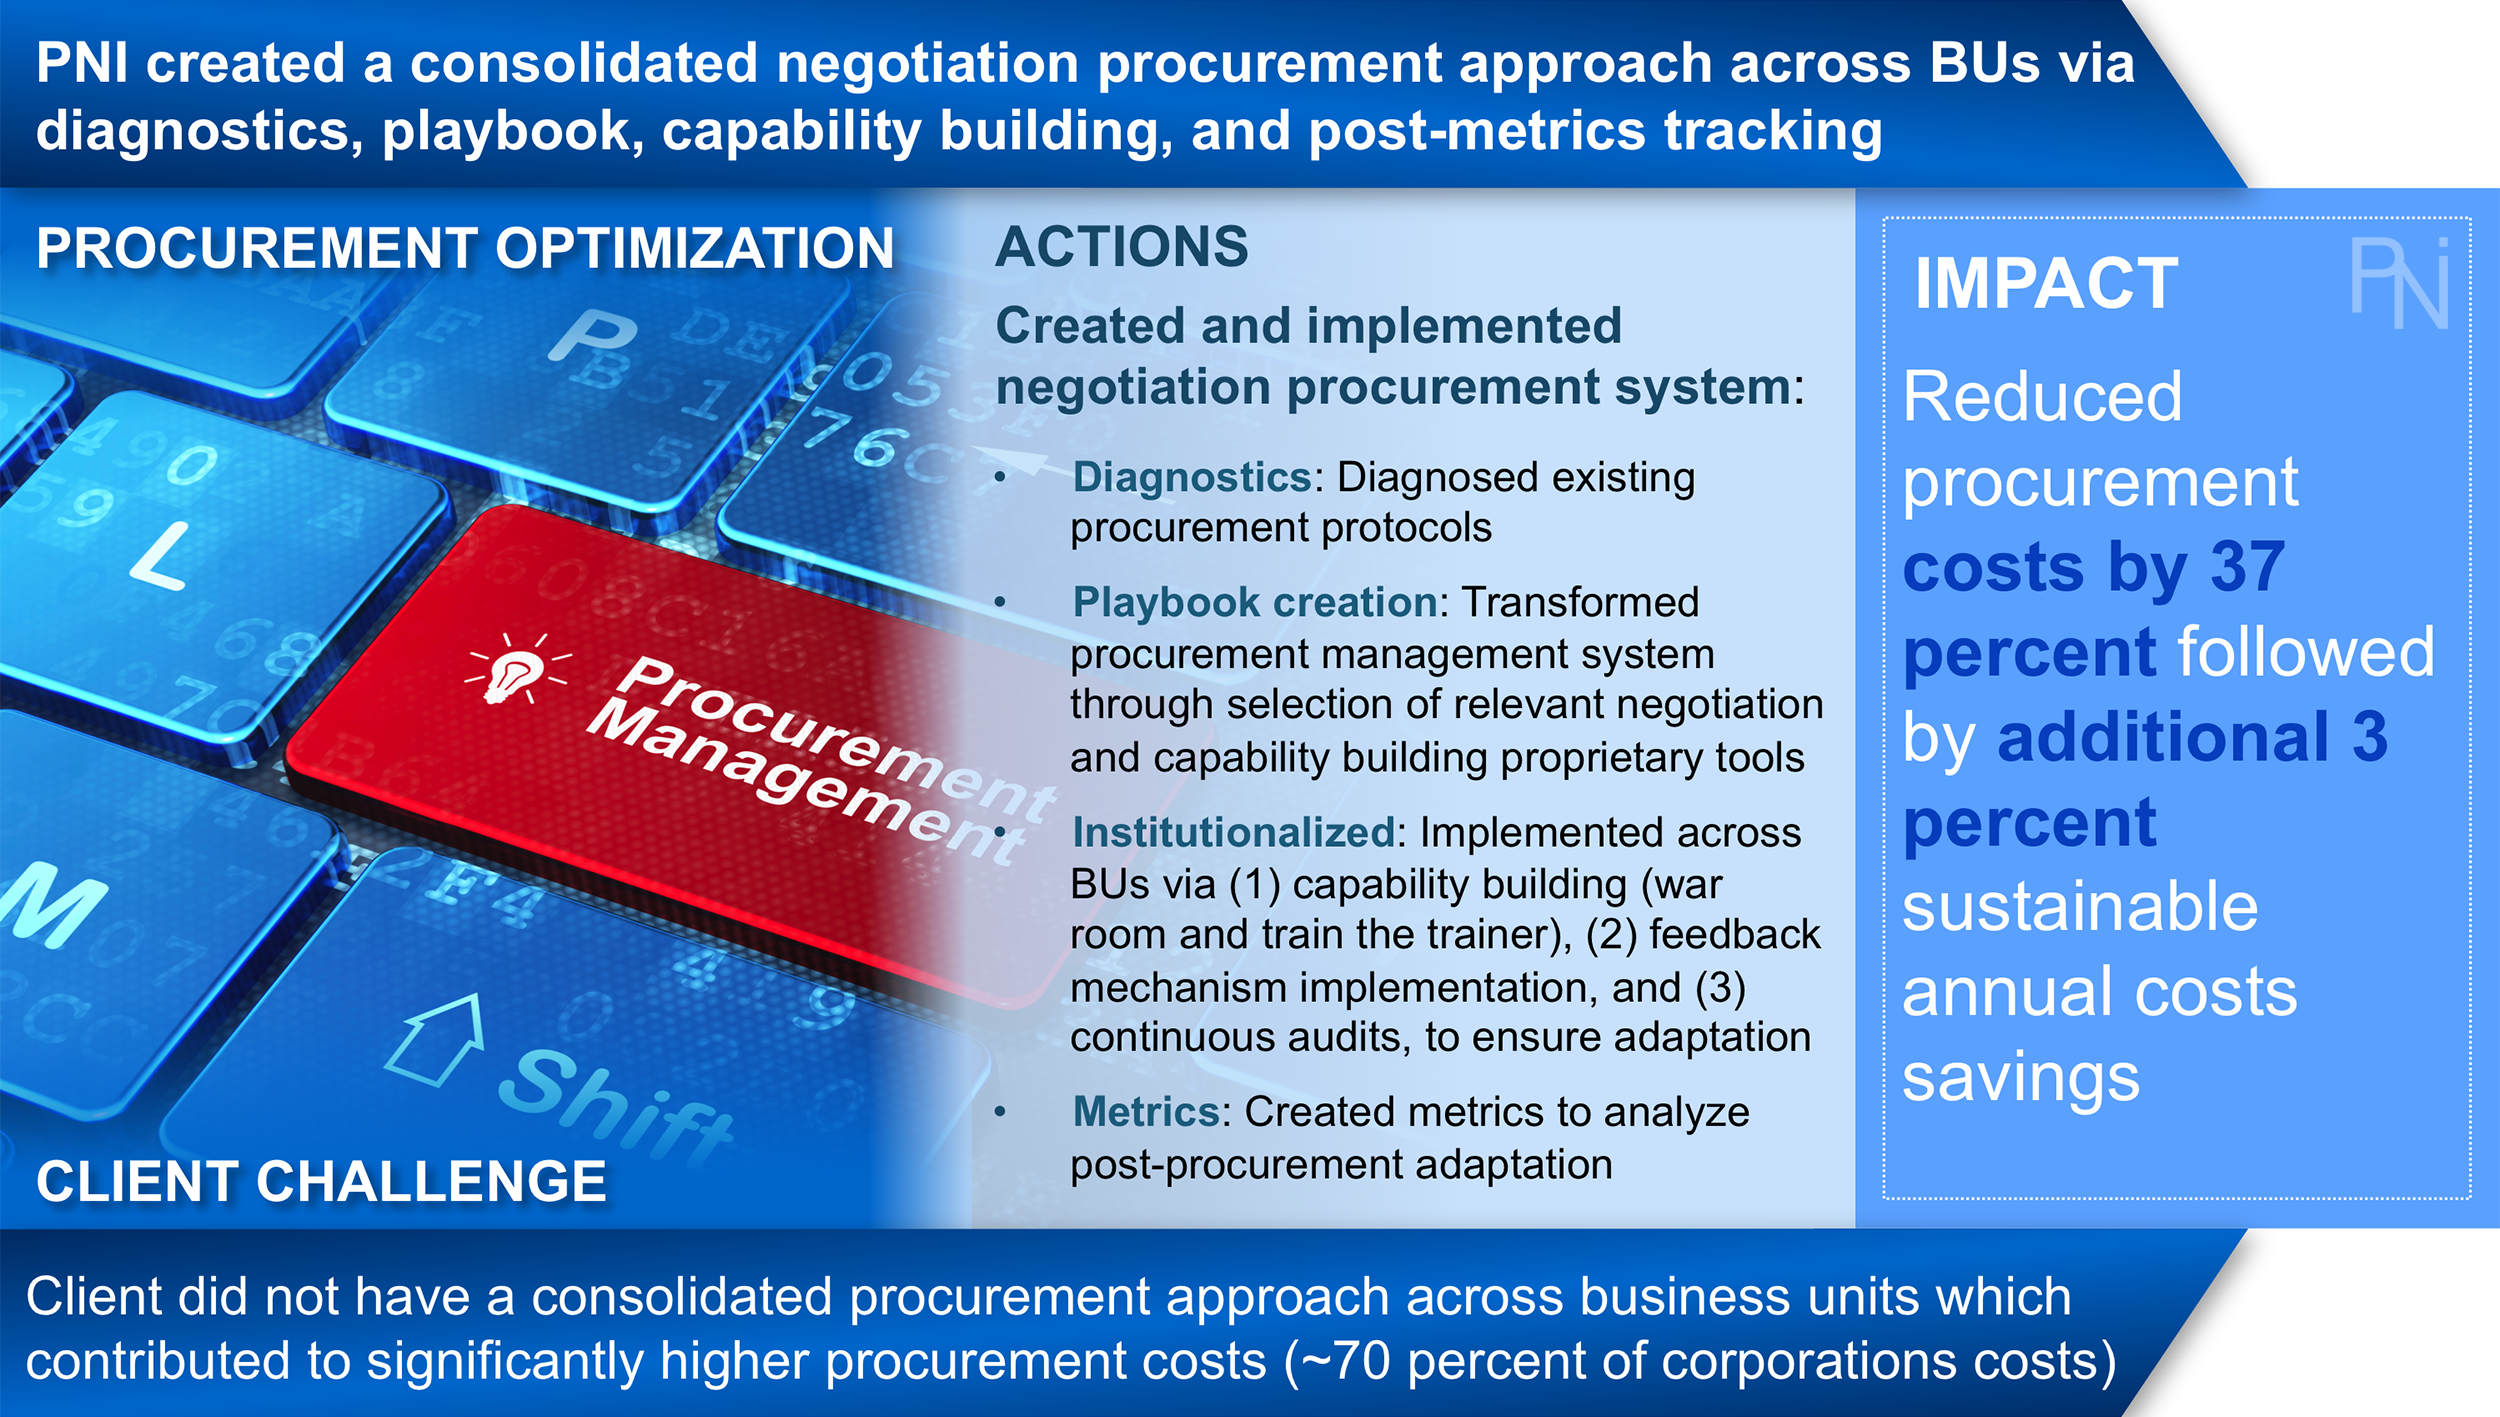 Procurement and Supply Chain Results 2 - PNI.png